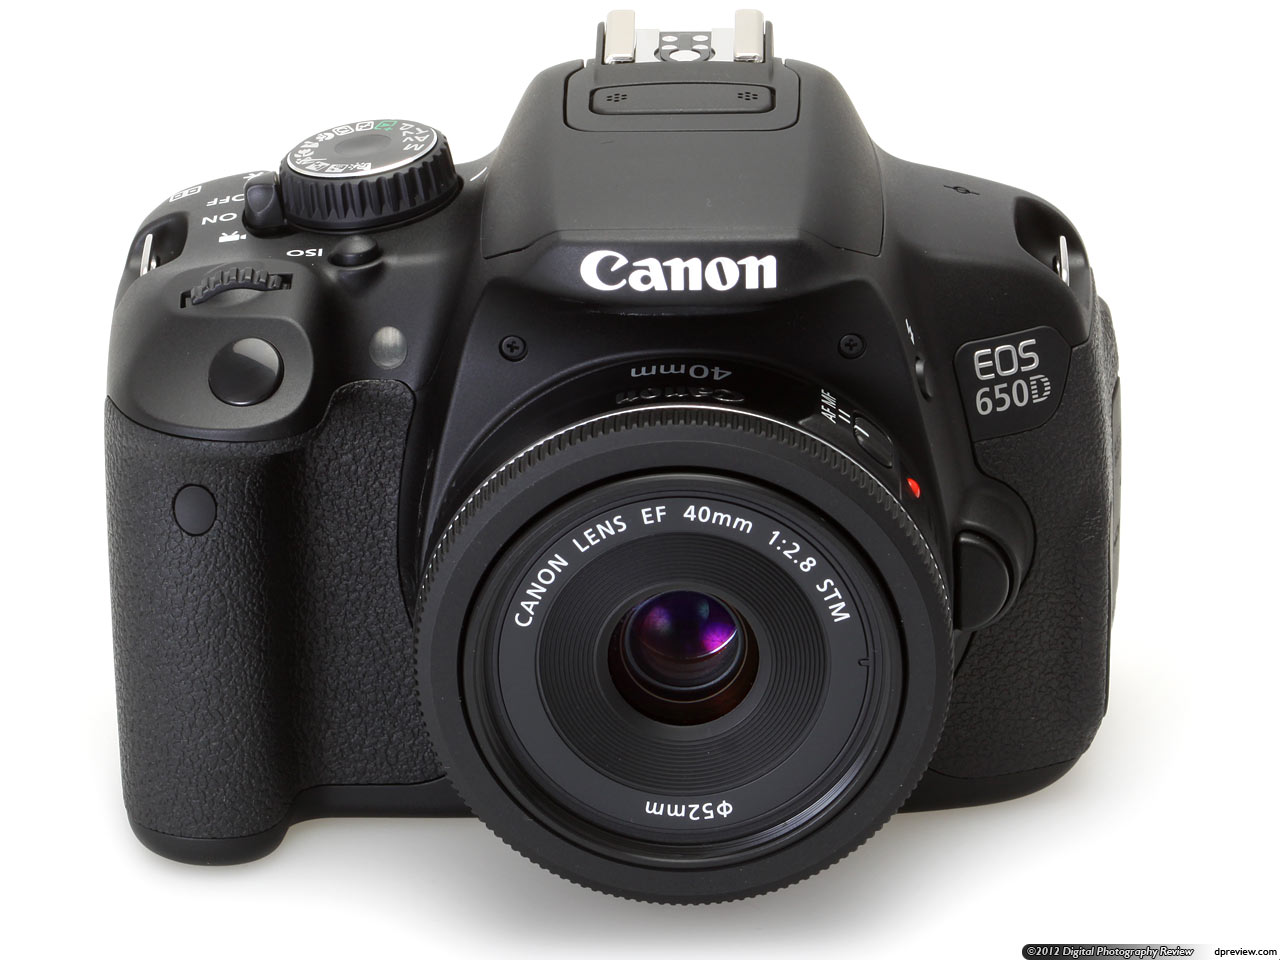 Canon 650 D : canon eos 650d rebel t4i in depth review digital photography review ~ Buech-reservation.com Haus und Dekorationen